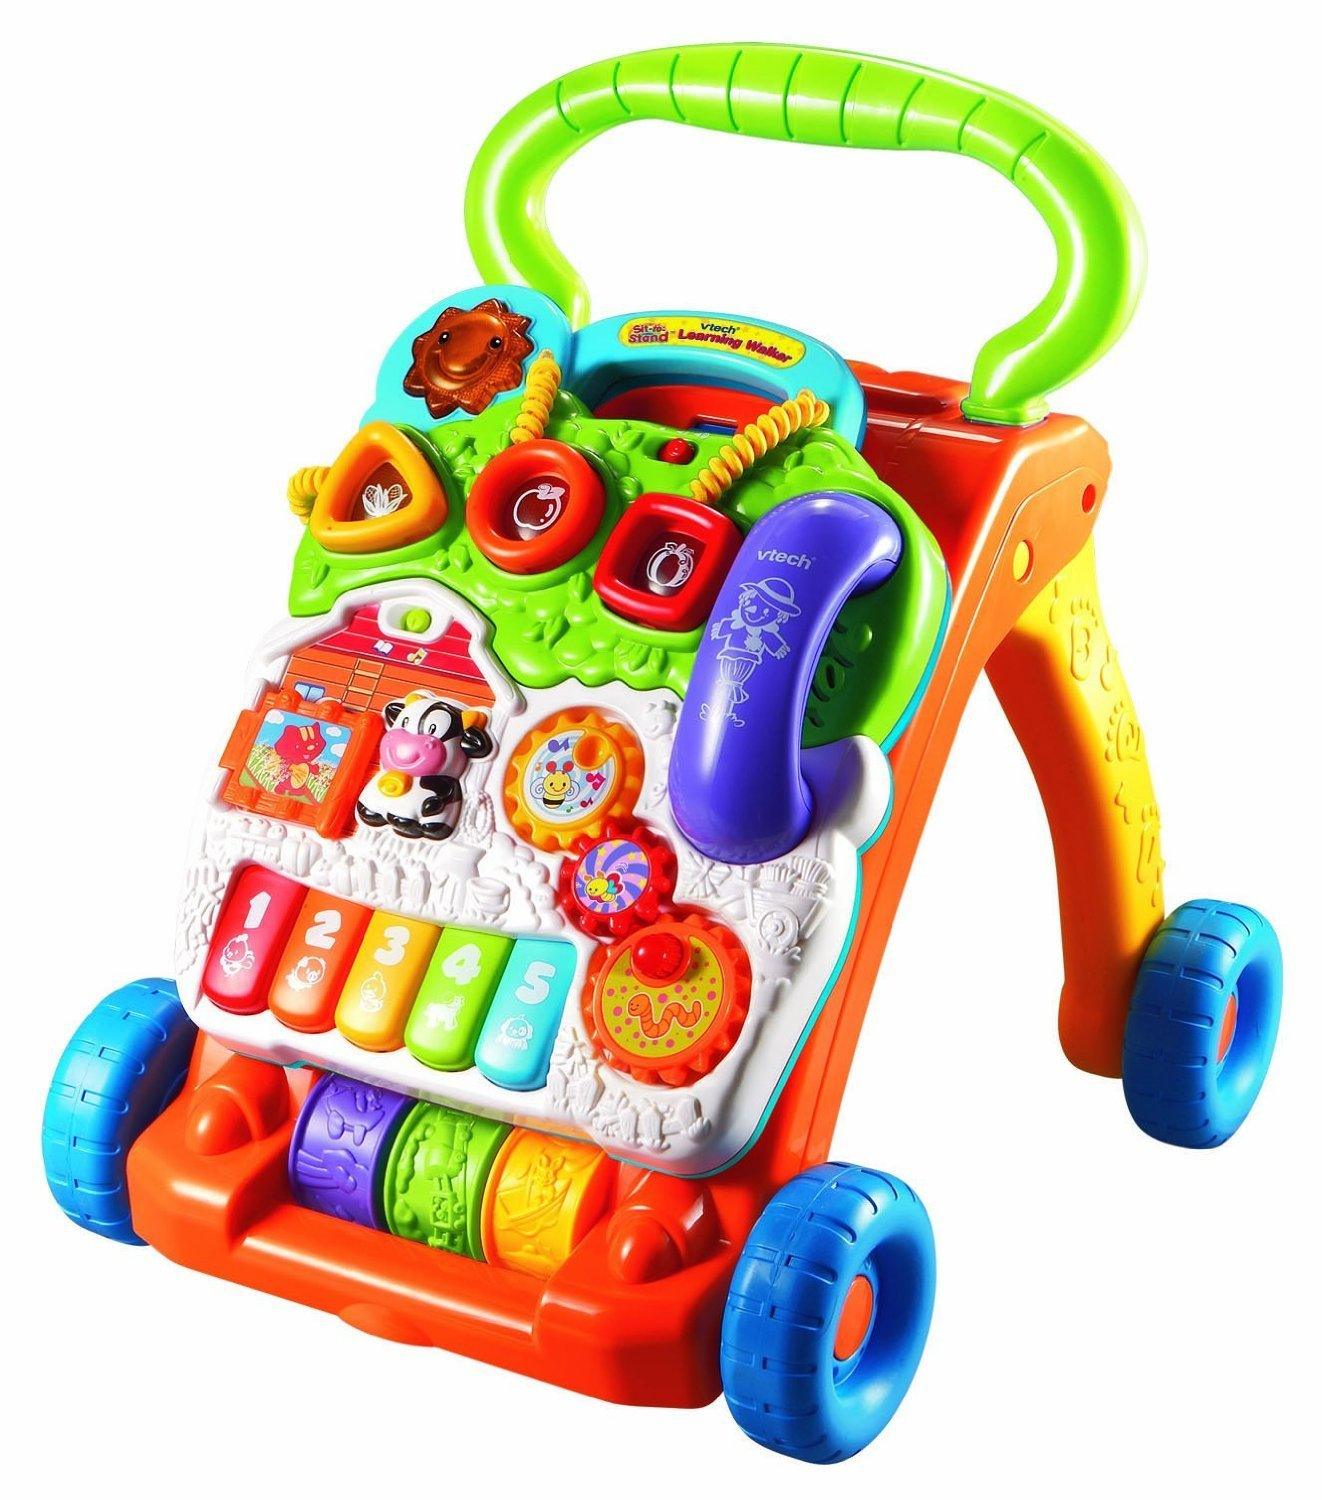 VTech Sit-to-Stand Learning Walker – Available in Orange and Lavender